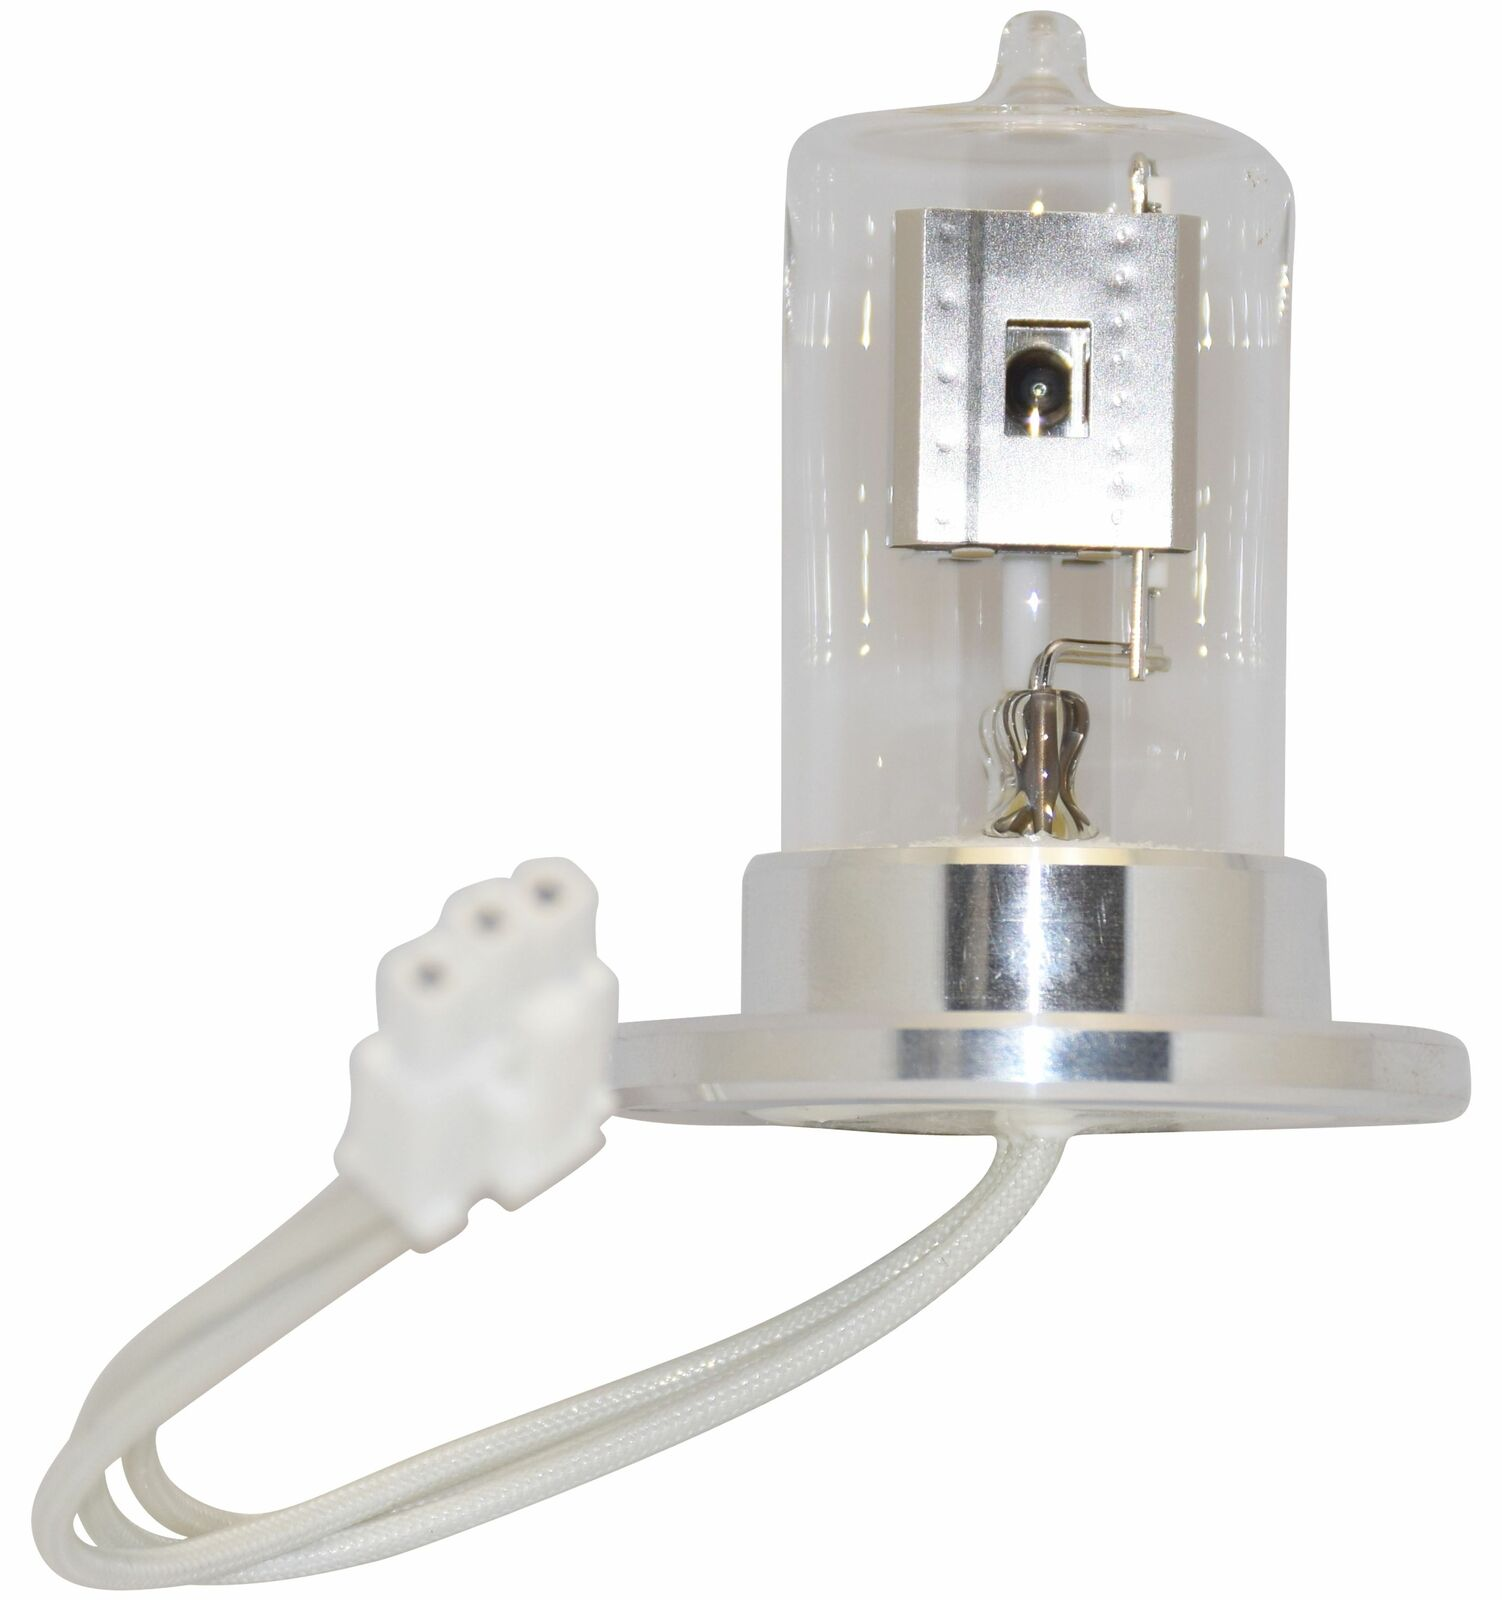 REPLACEMENT BULB FOR BATTERIES AND LIGHT BULBS A6611W